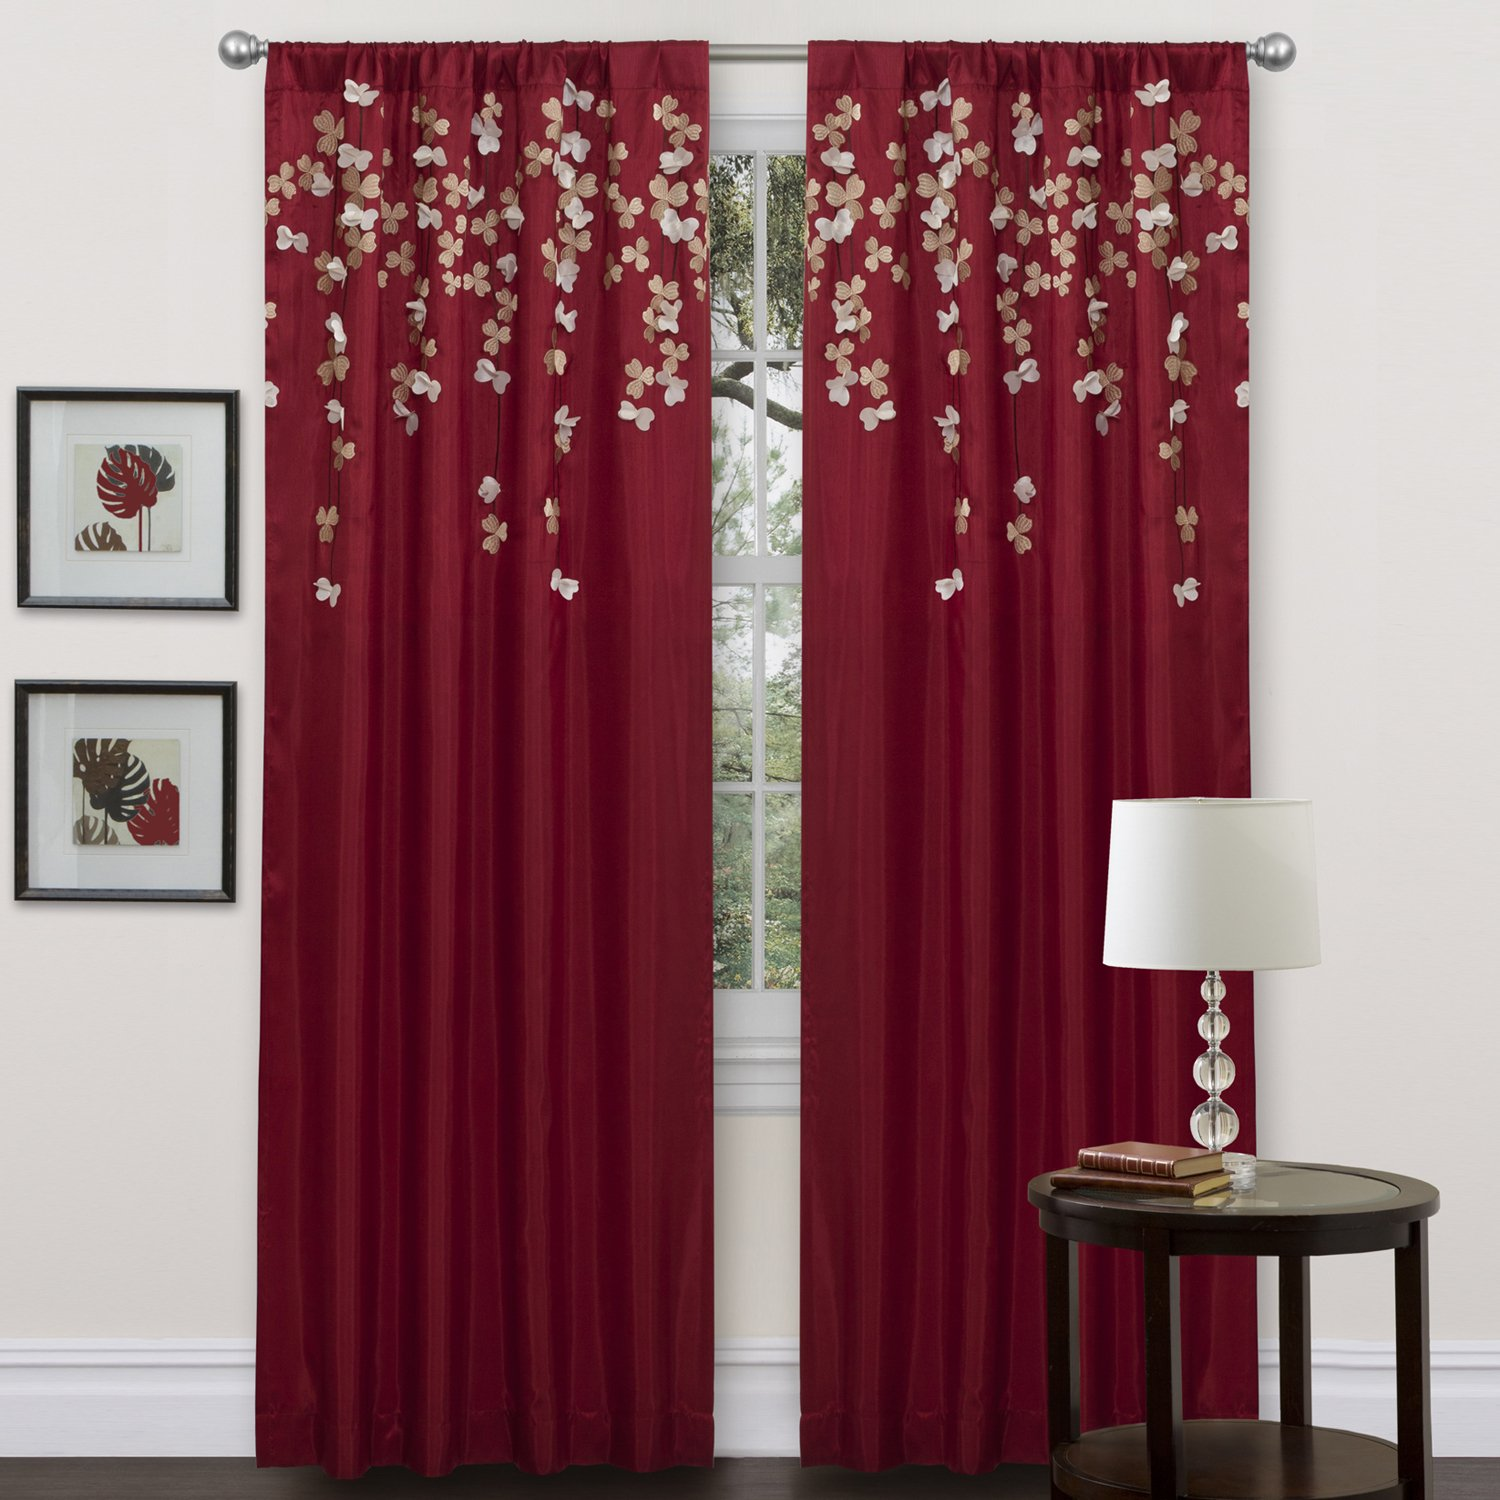 living decorating watch youtube for curtain ideas room curtains